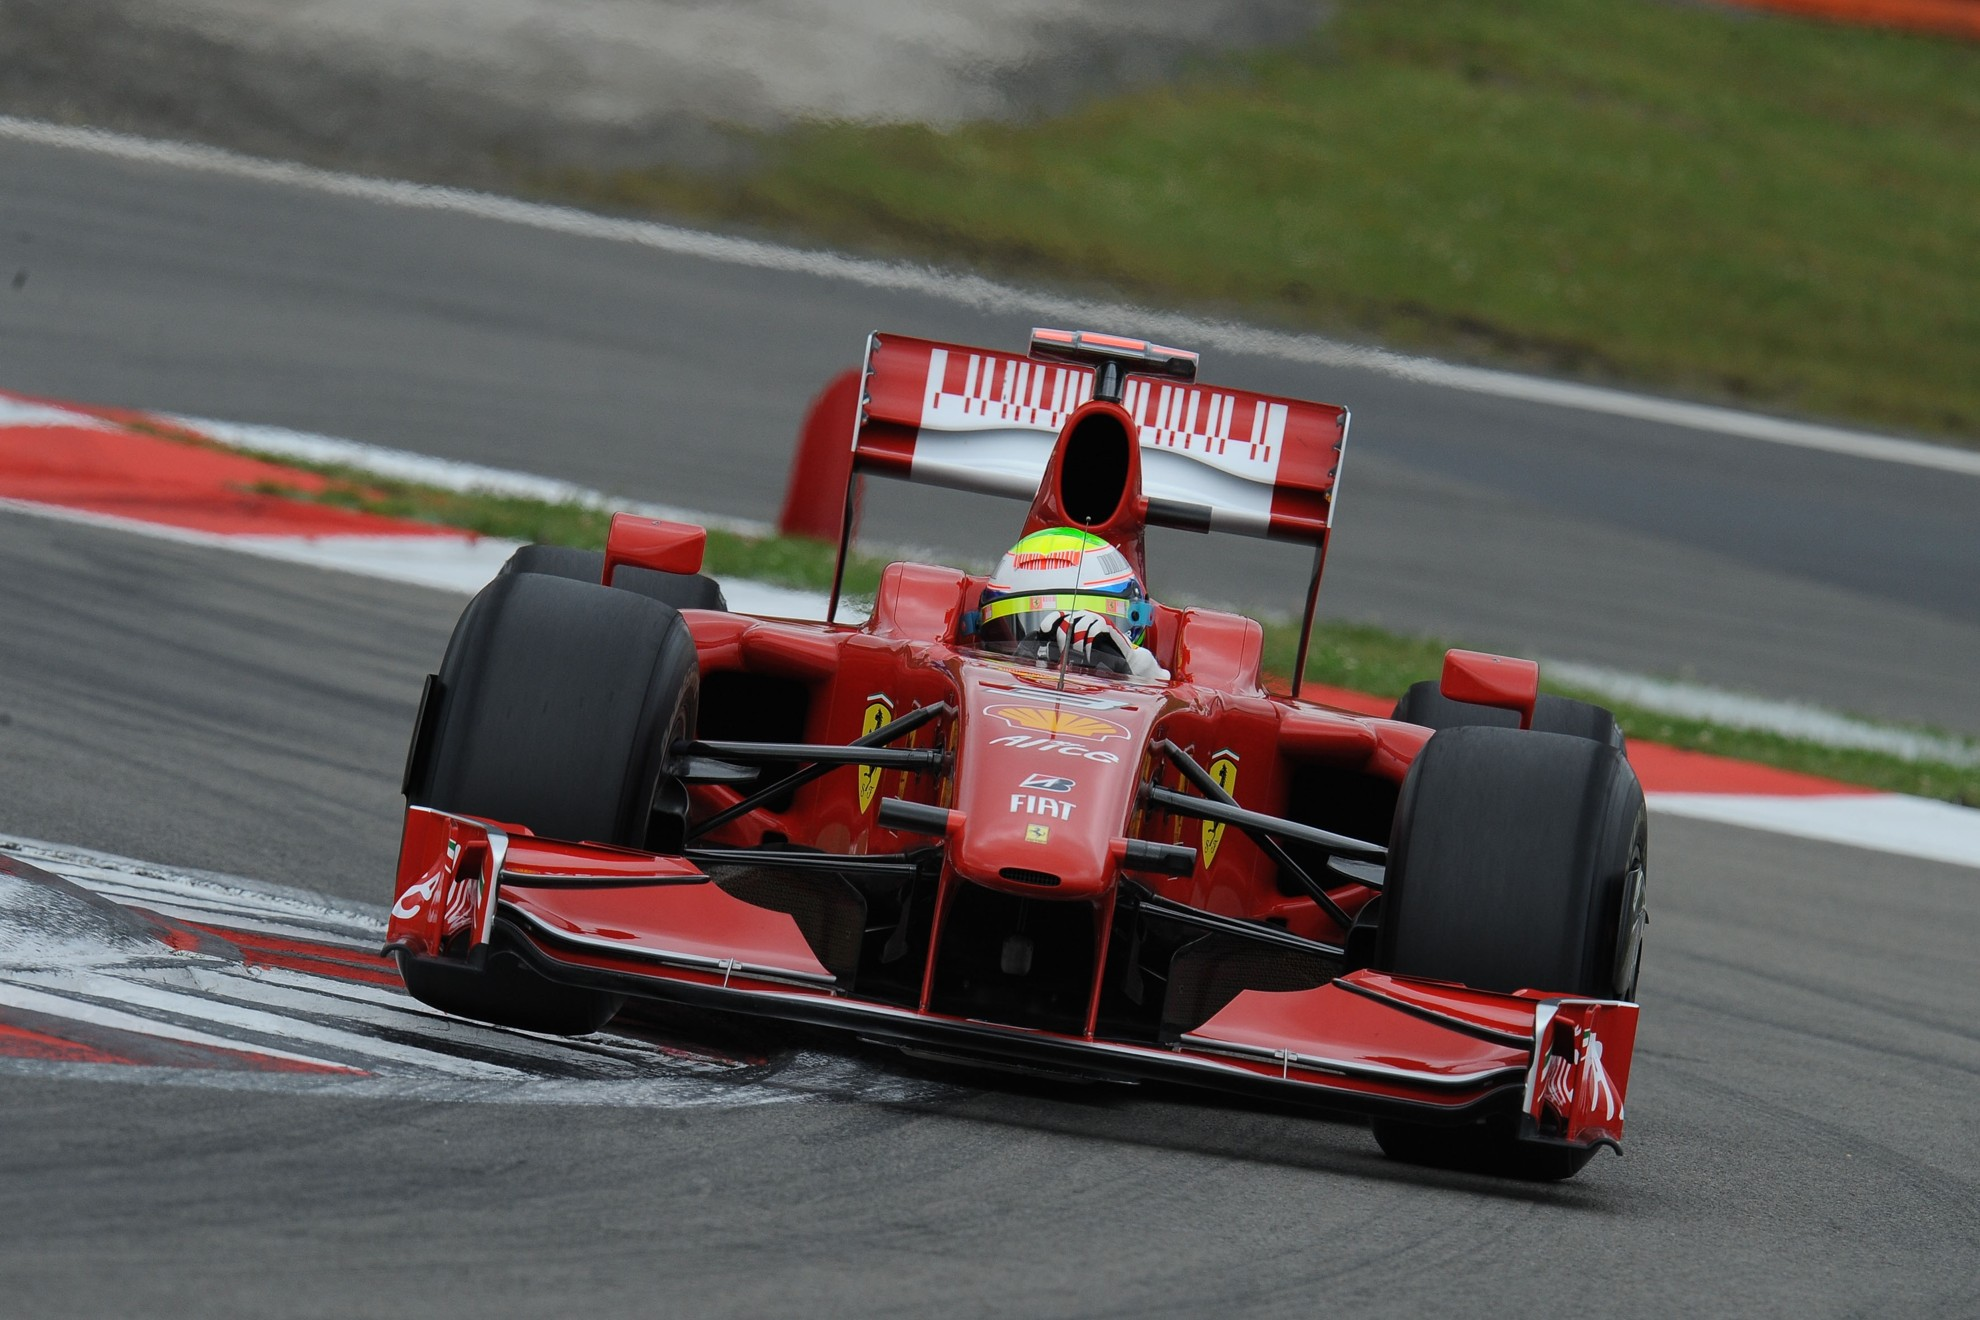 Ferrari-Grand-Prix-Race-Car